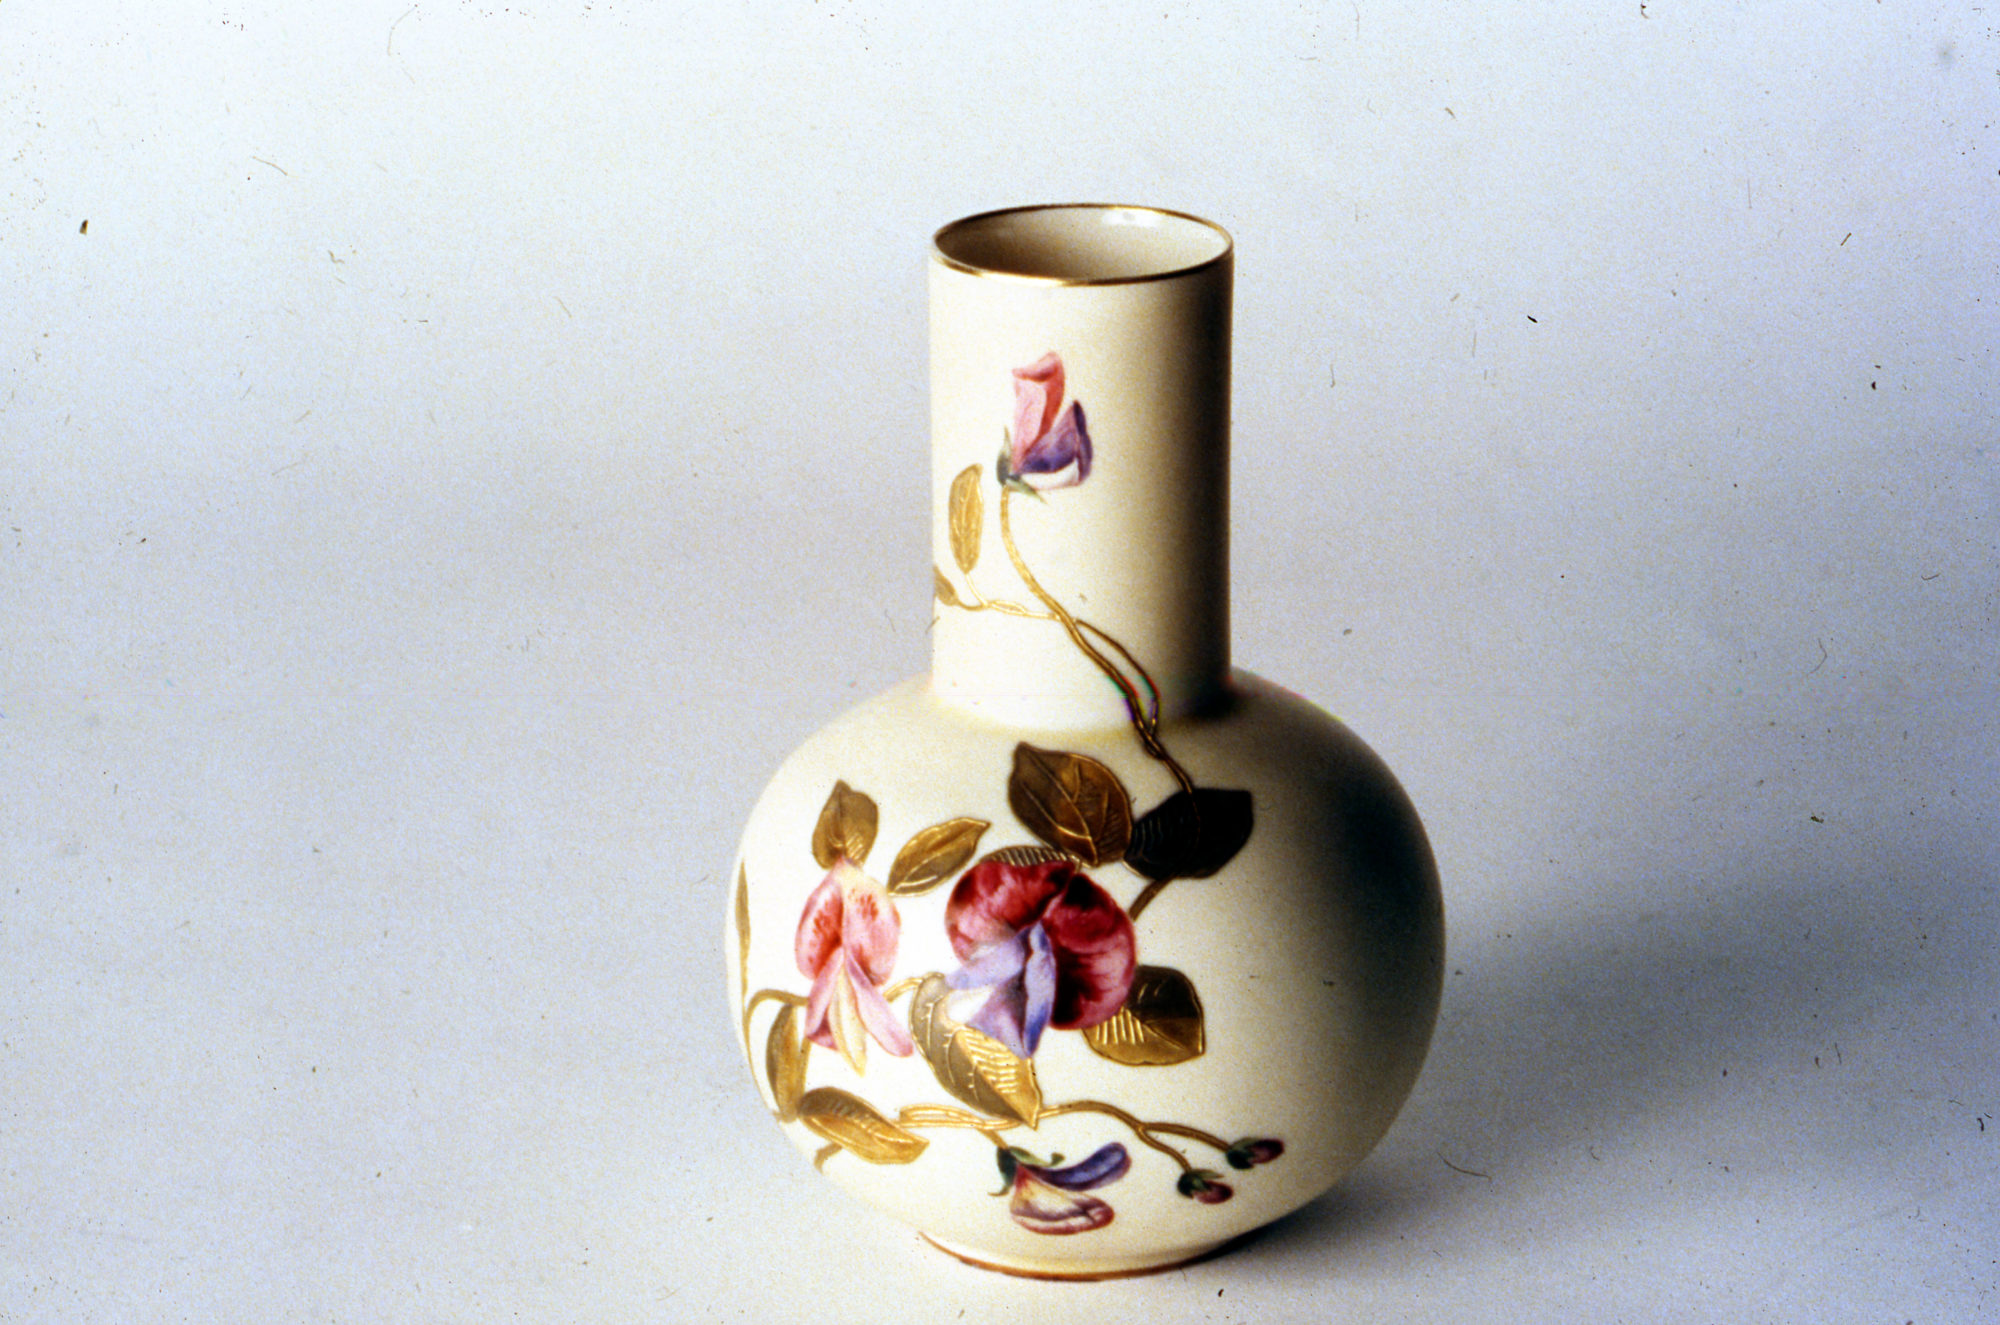 Greenwood Pottery, Ne Plus Ultra Vase, ca. 1885, NJSM 79.1.4